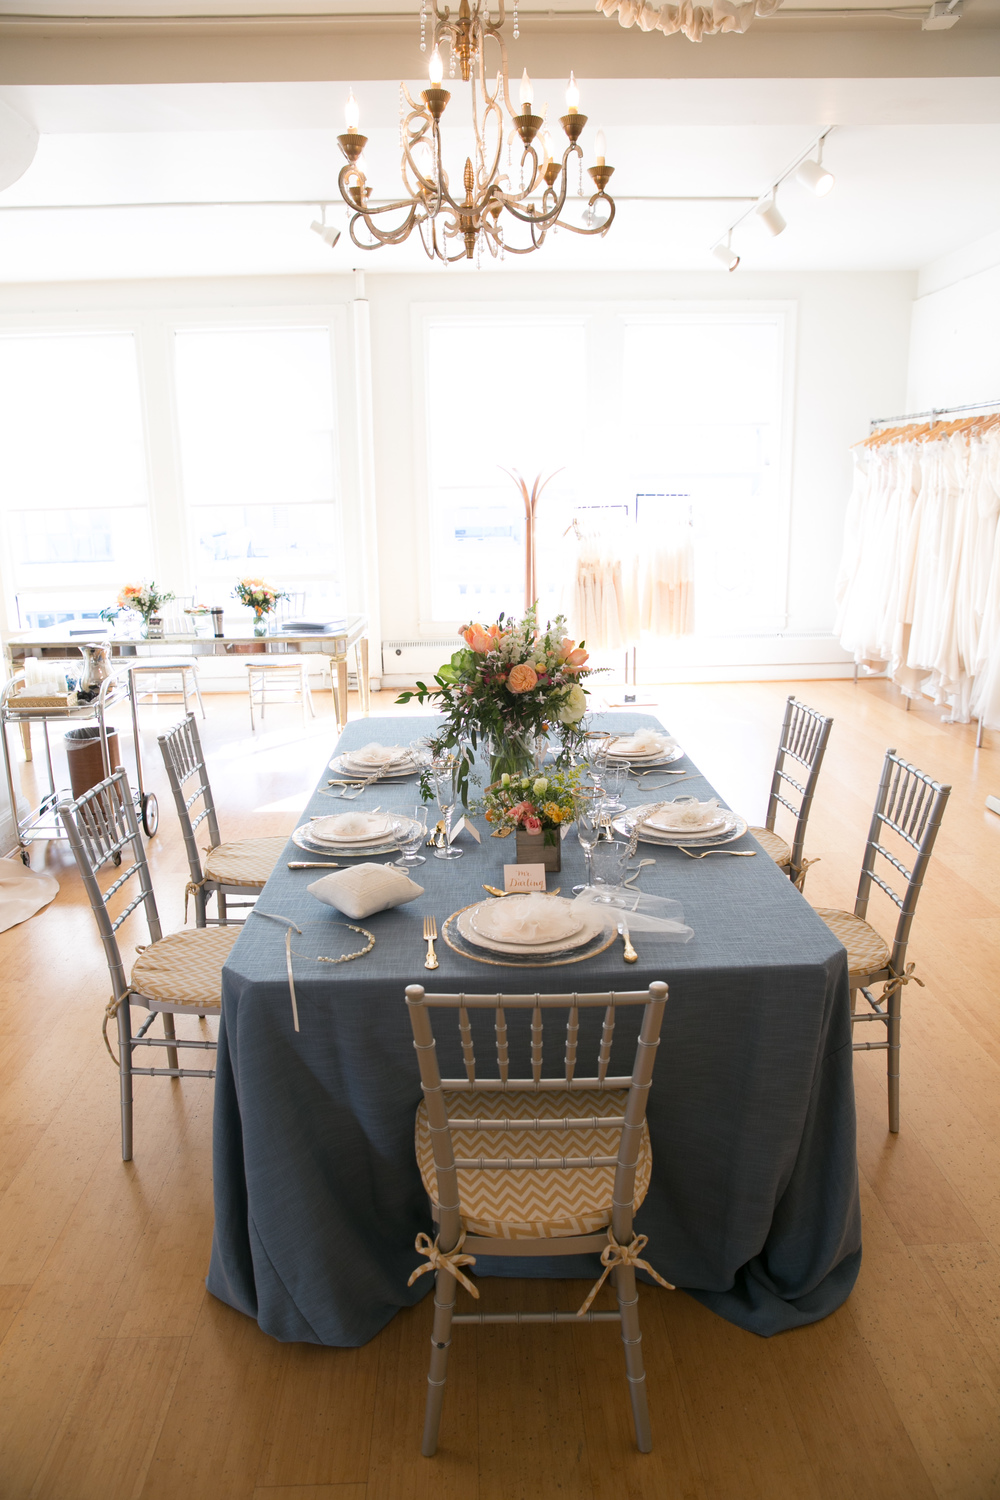 Styled Shoot at the Amy Kuschel Salon in San Francisco | Bella Notte Events | San Francisco Wedding Planning